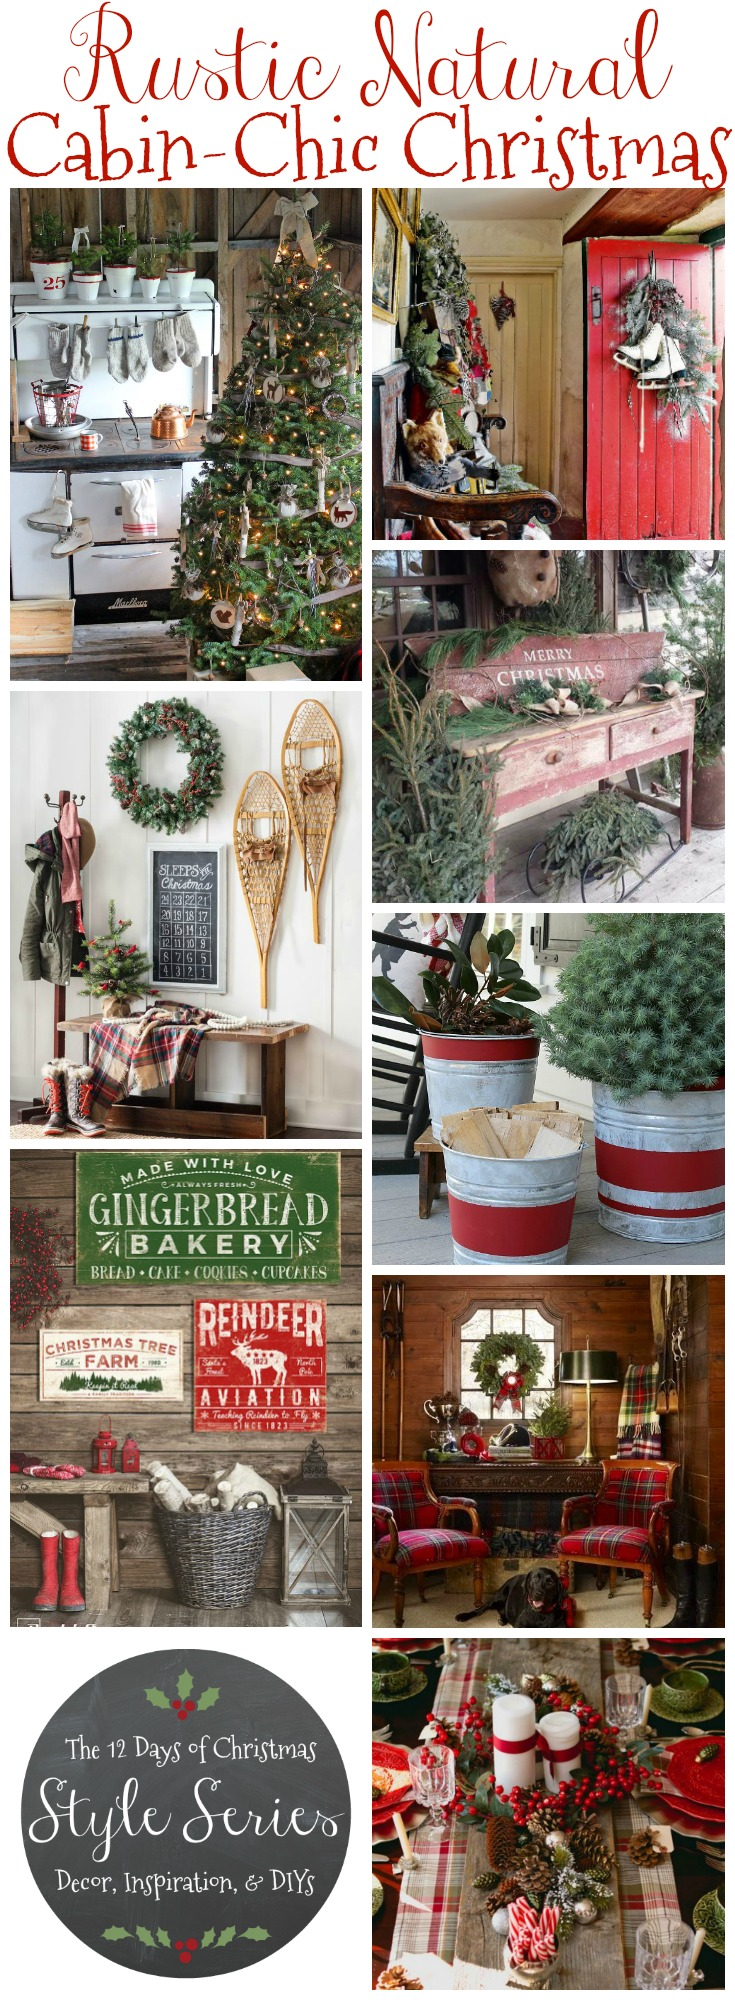 Rustic Merry Christmas Signs Rustic Natural Cabin-chic Christmas Style Series - The